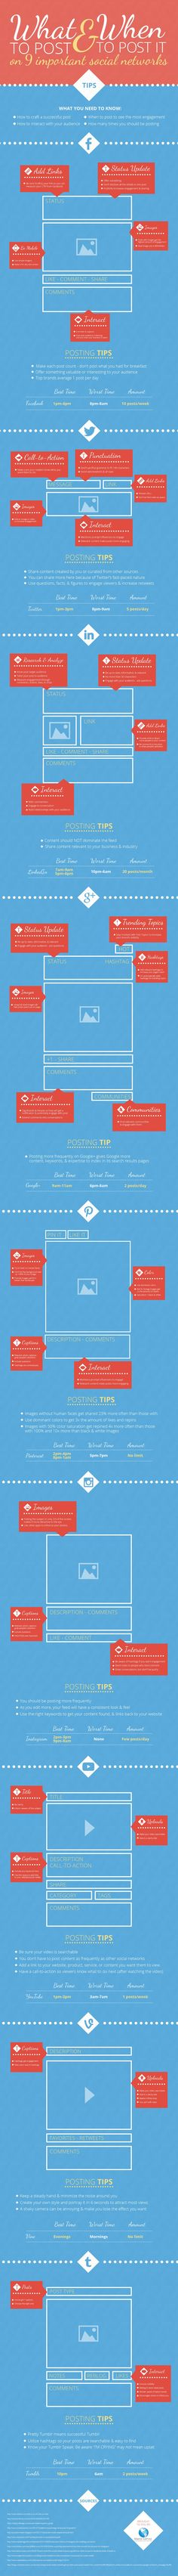 What, When and Where to Post on Social Media [INFOGRAPHIC]